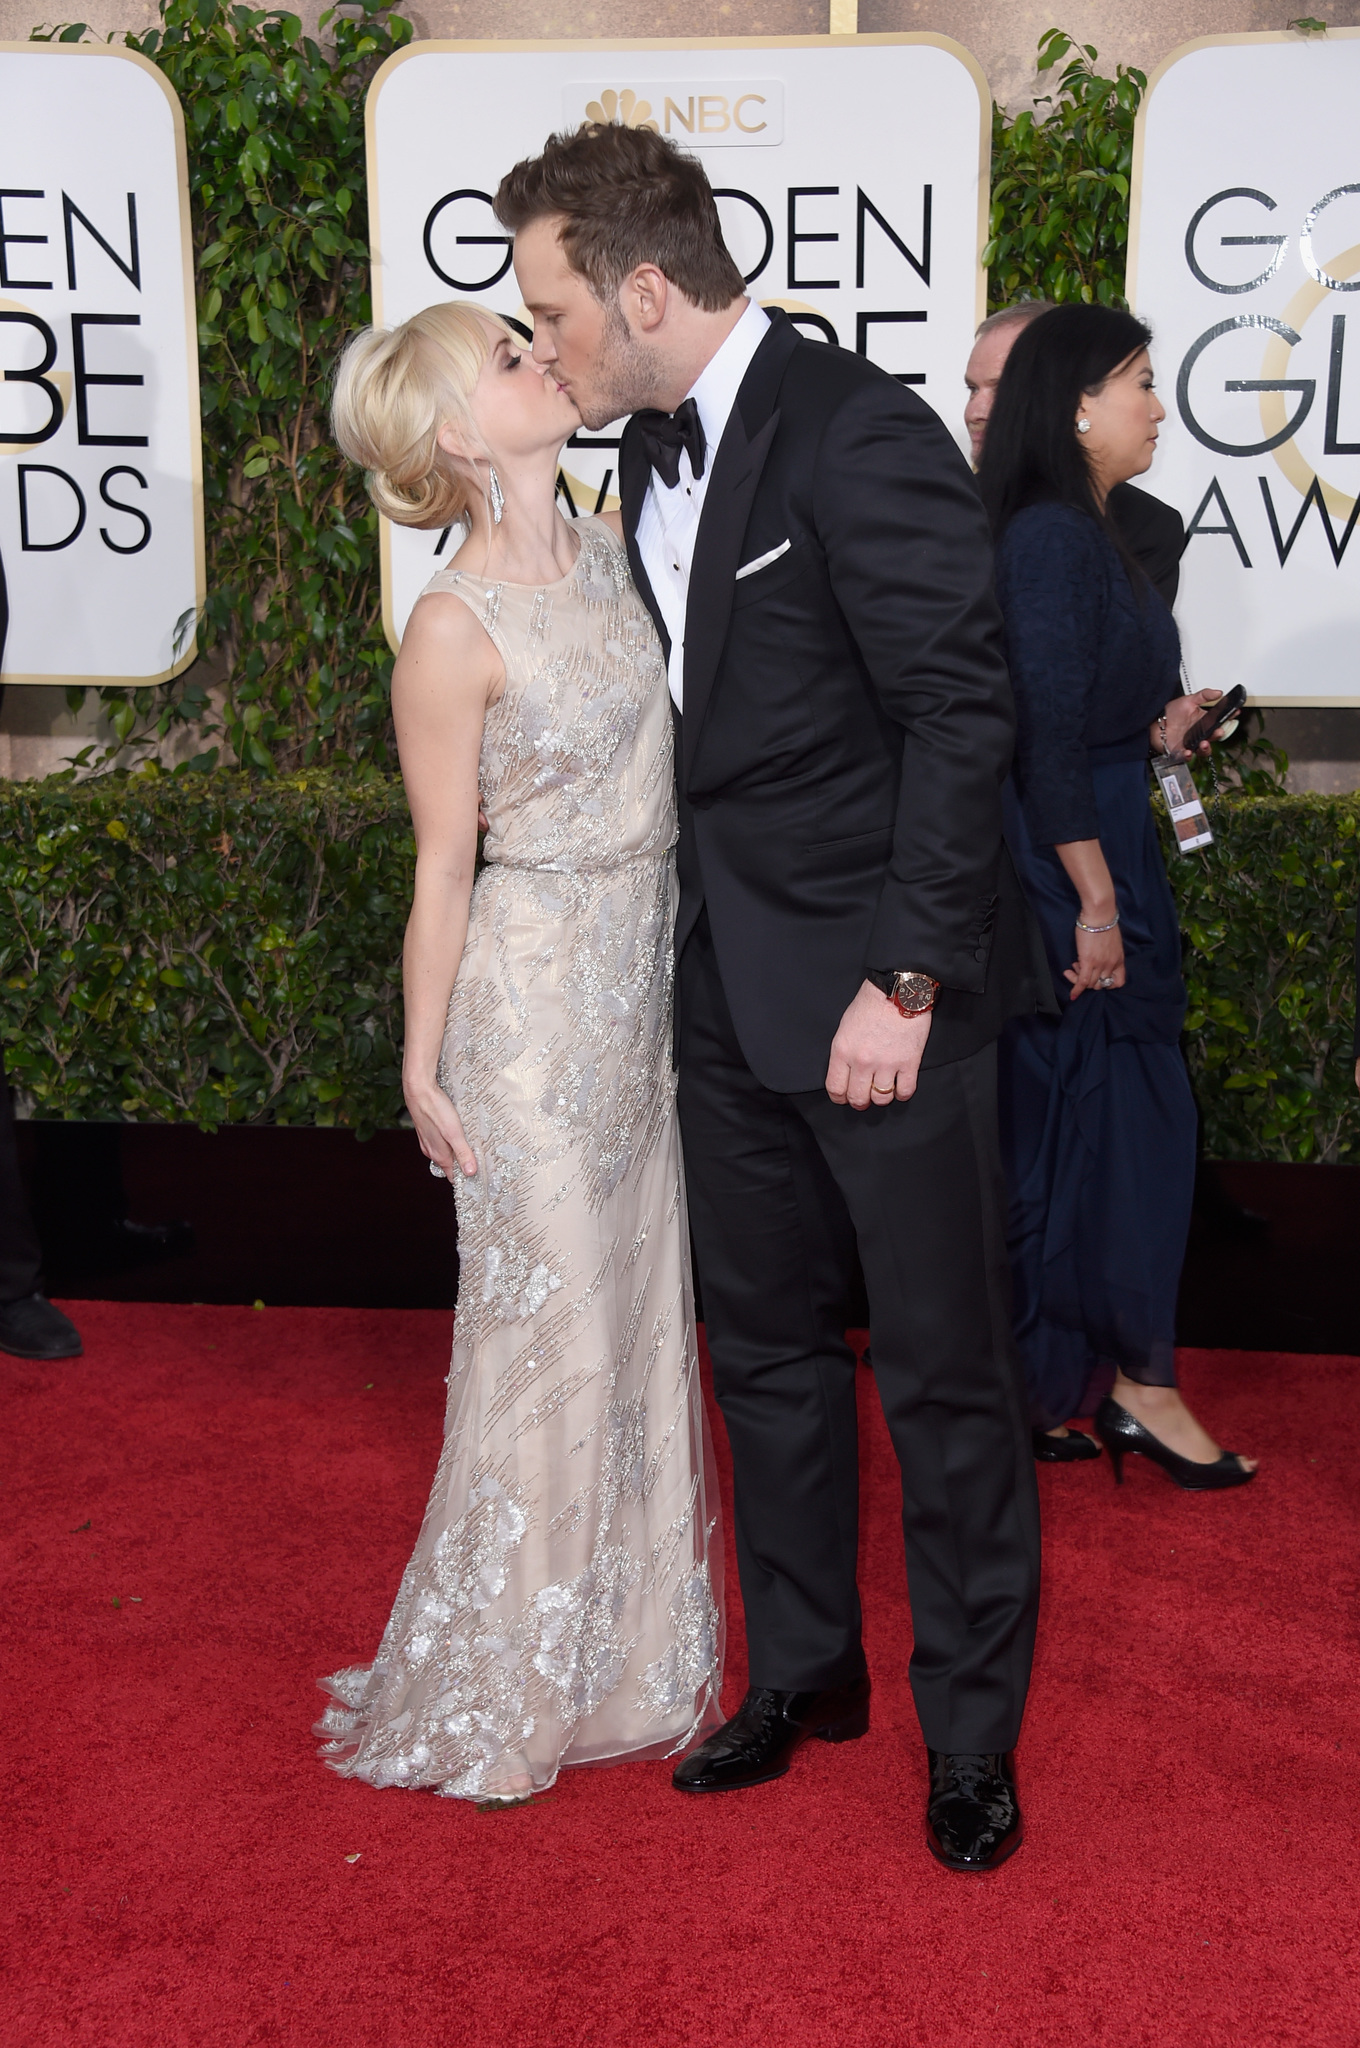 Anna Faris and Chris Pratt at event of 72nd Golden Globe Awards (2015) photo #489104